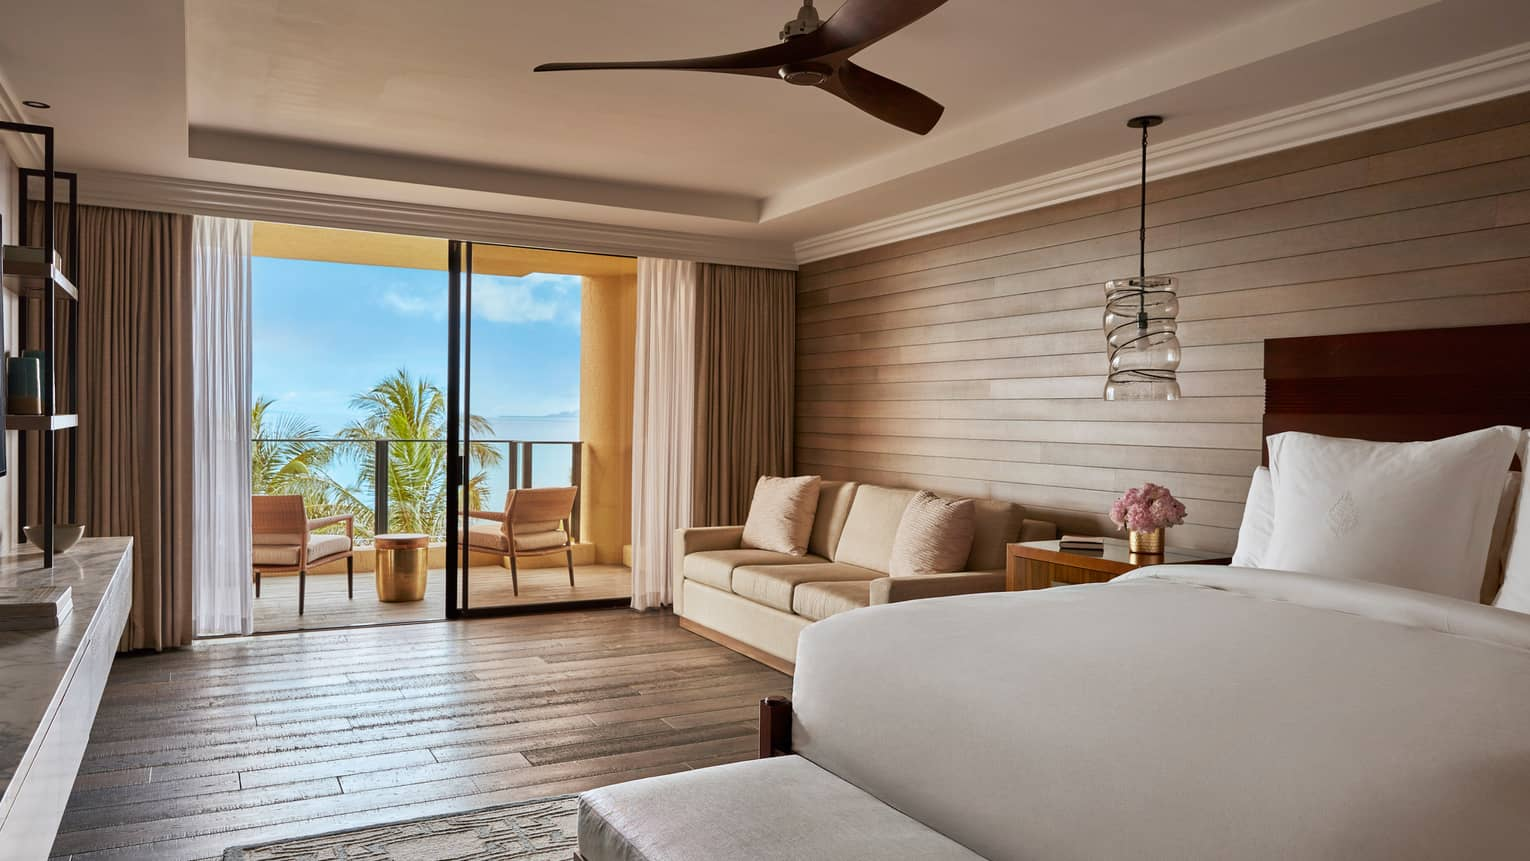 Elite Suite bedroom with doors out to a private terrace with view of the ocean